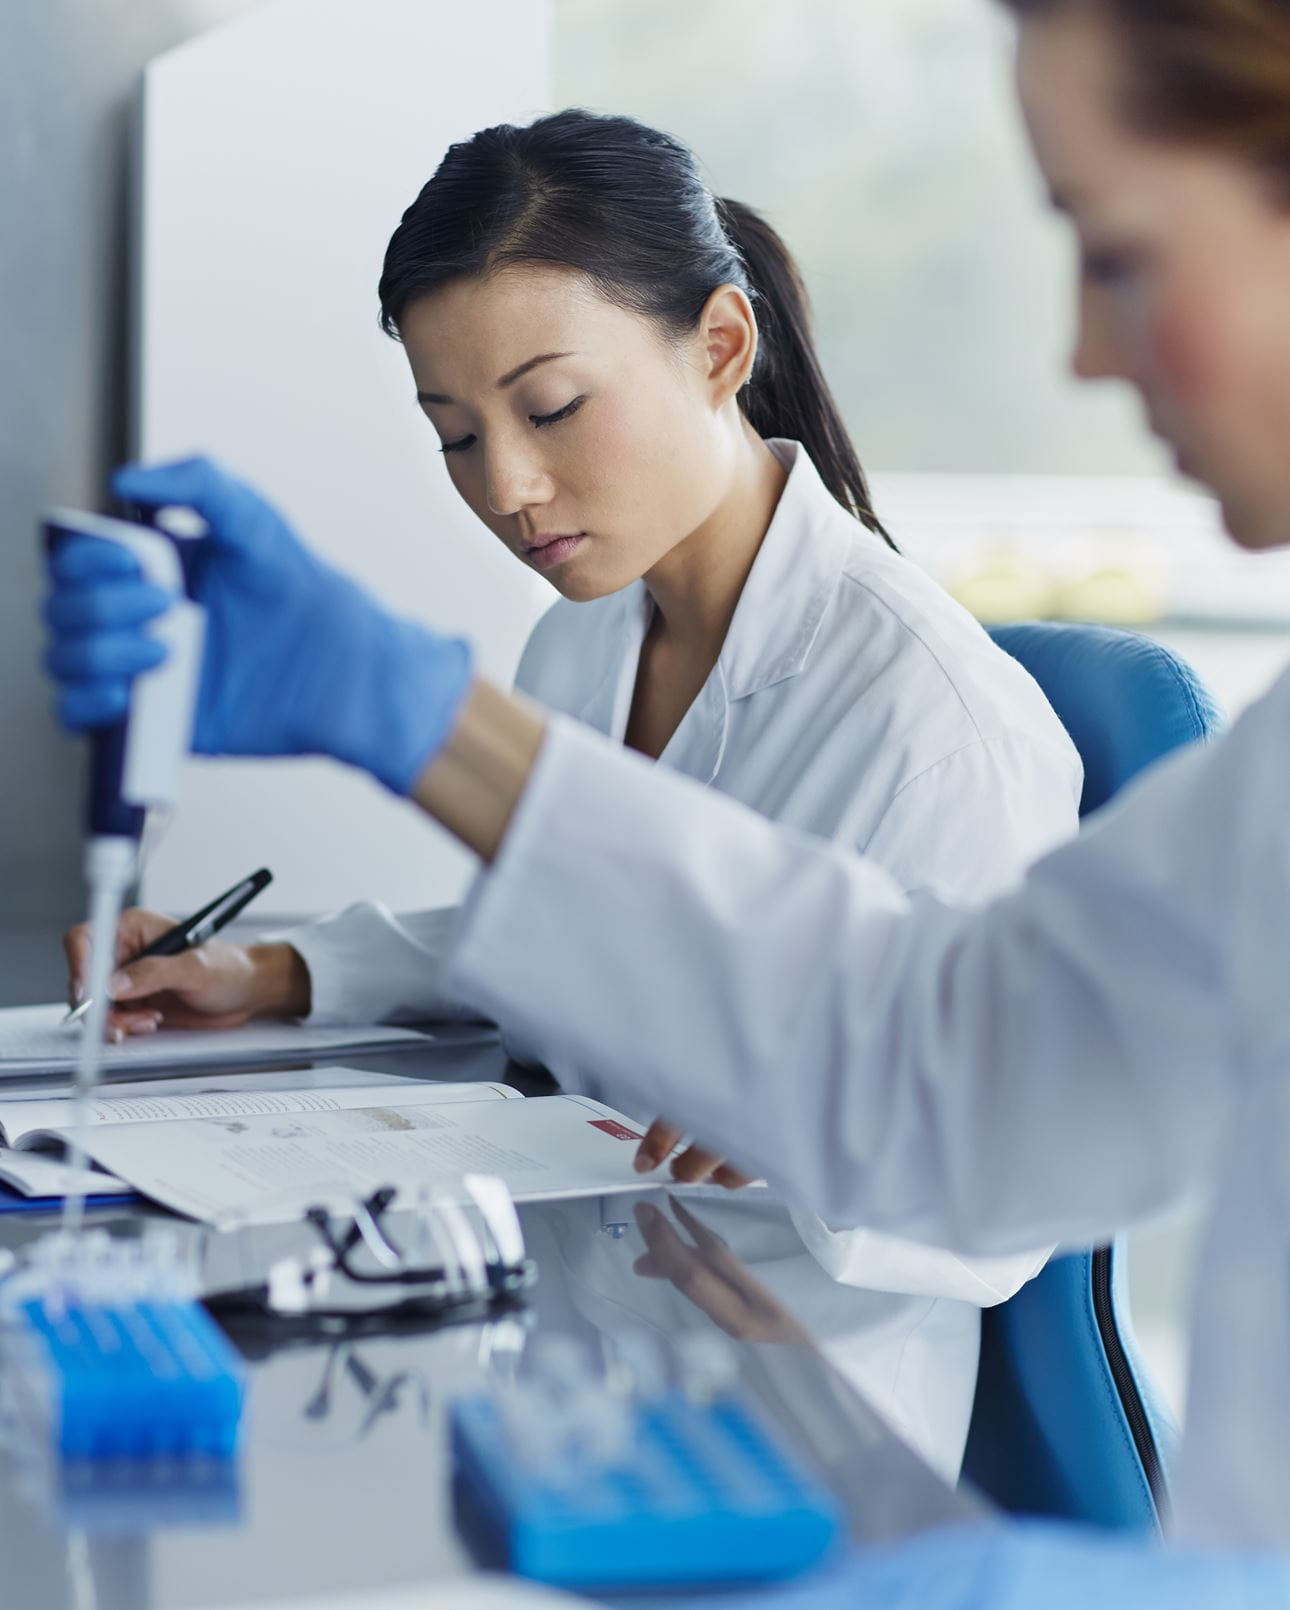 laboratory workers running tests image